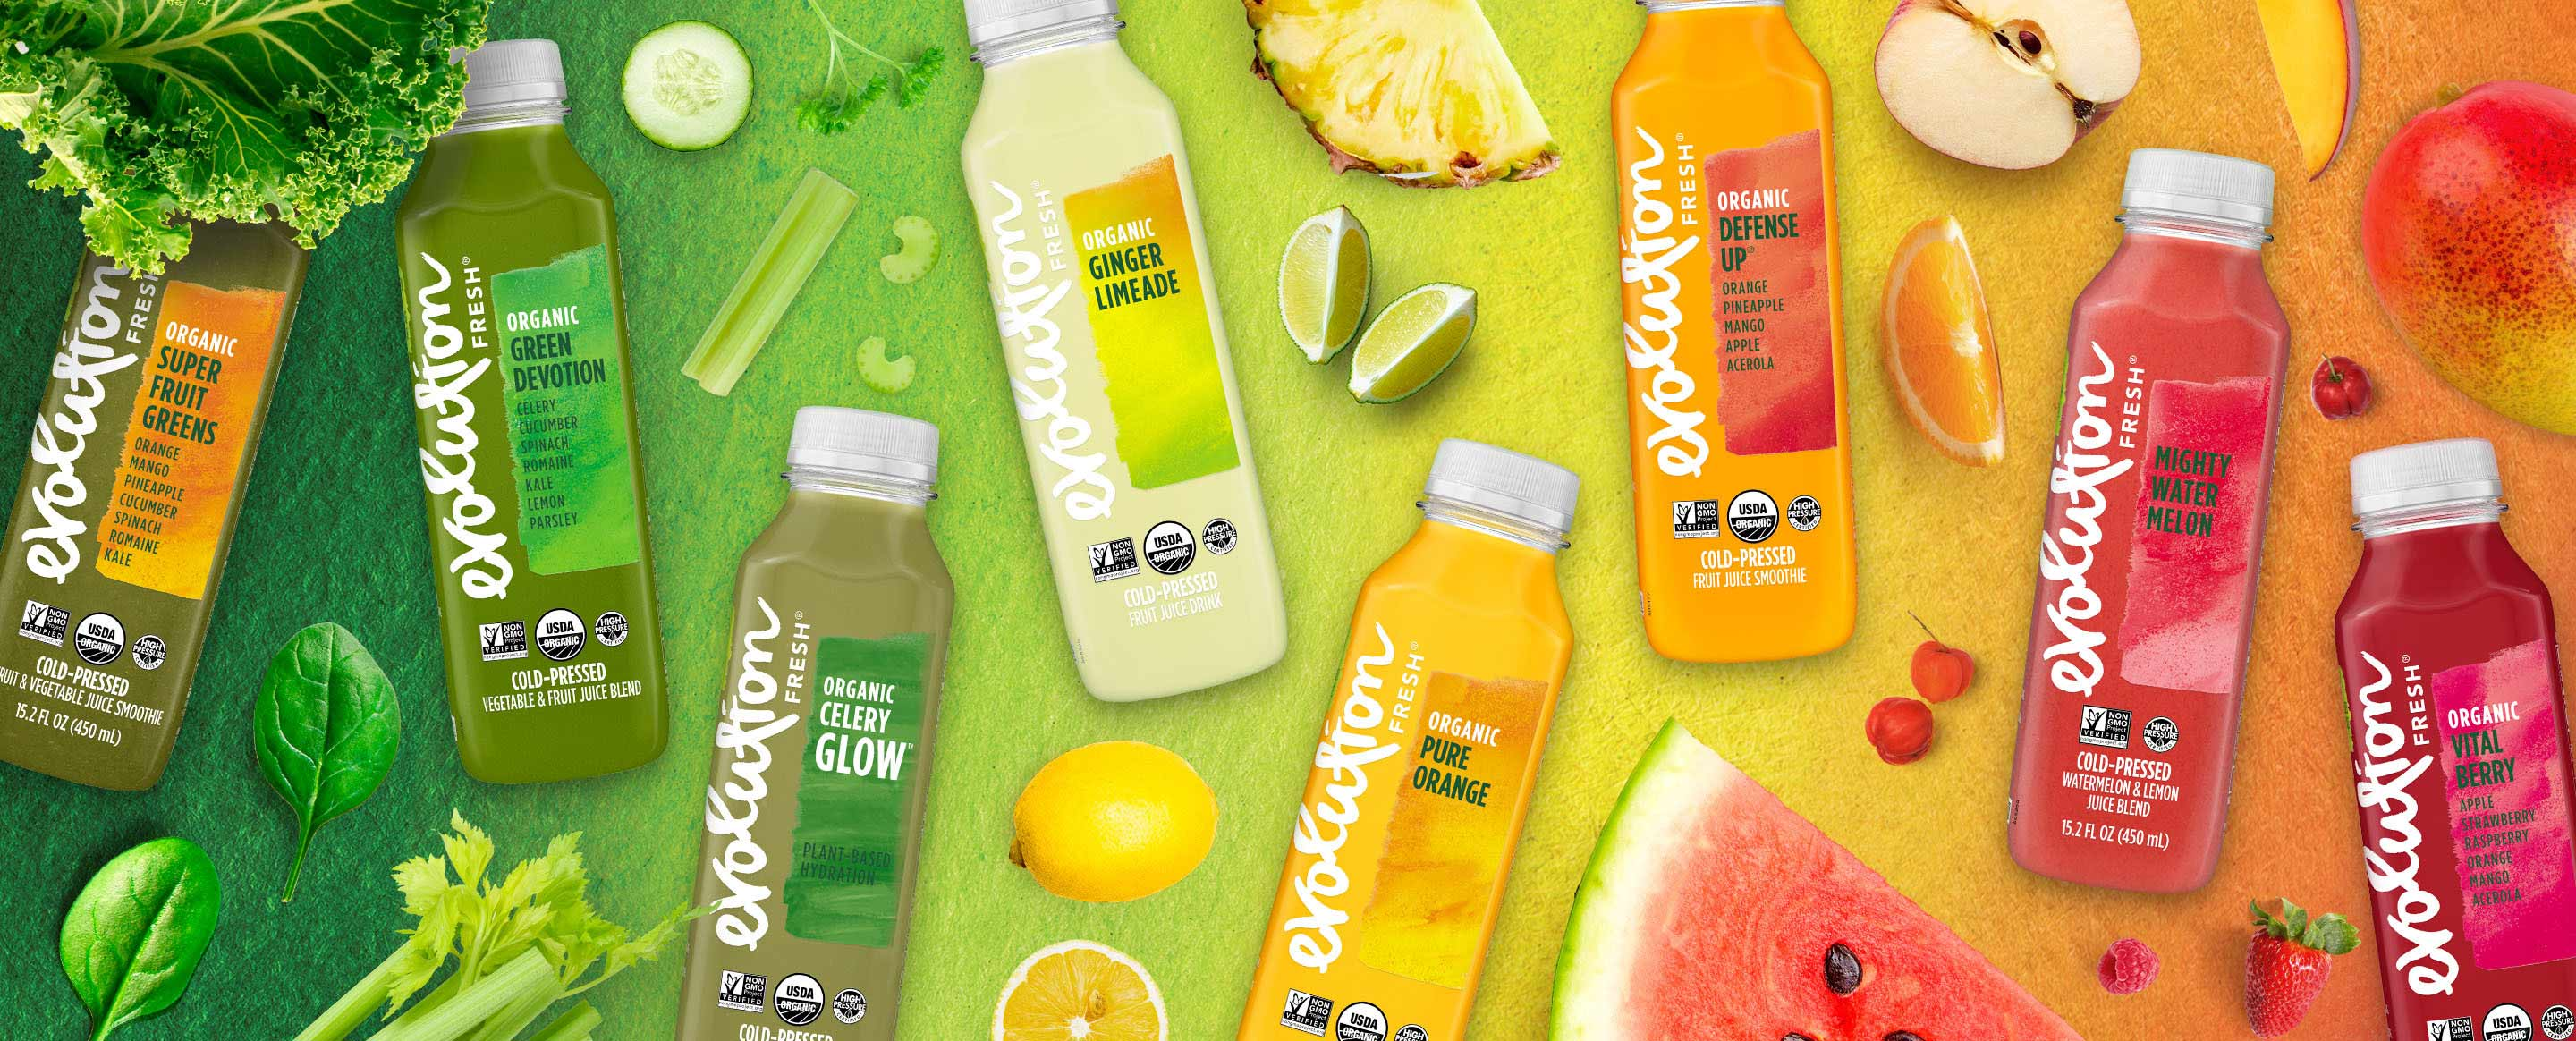 Image of various Evolution Fresh juices